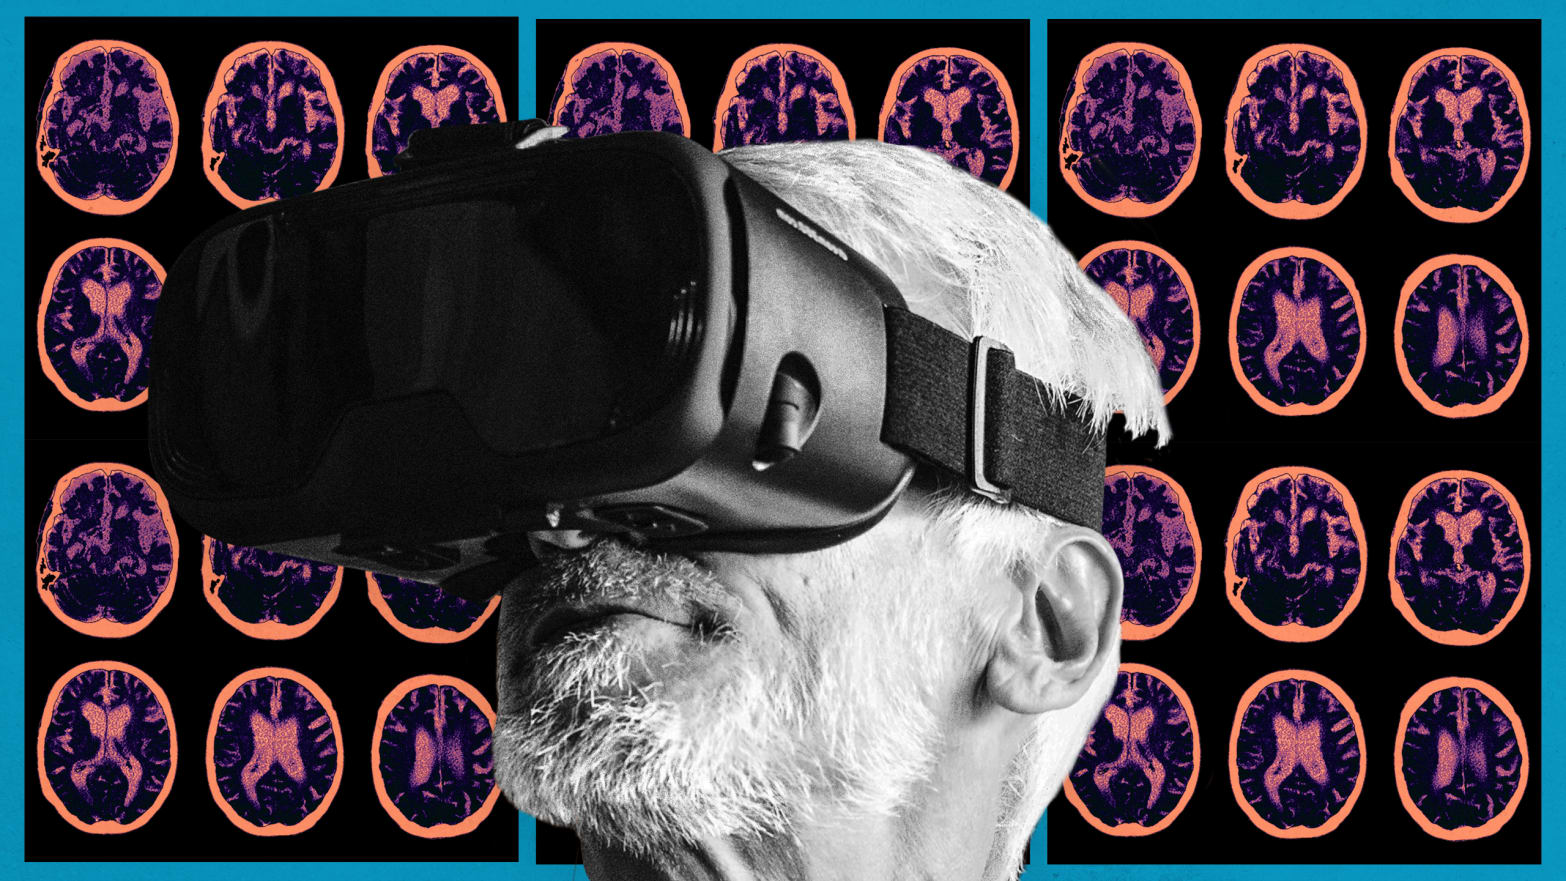 57b97424c22a image of elderly person wearing virtual reality vr headset with brain scans  behind in pink alzheimer